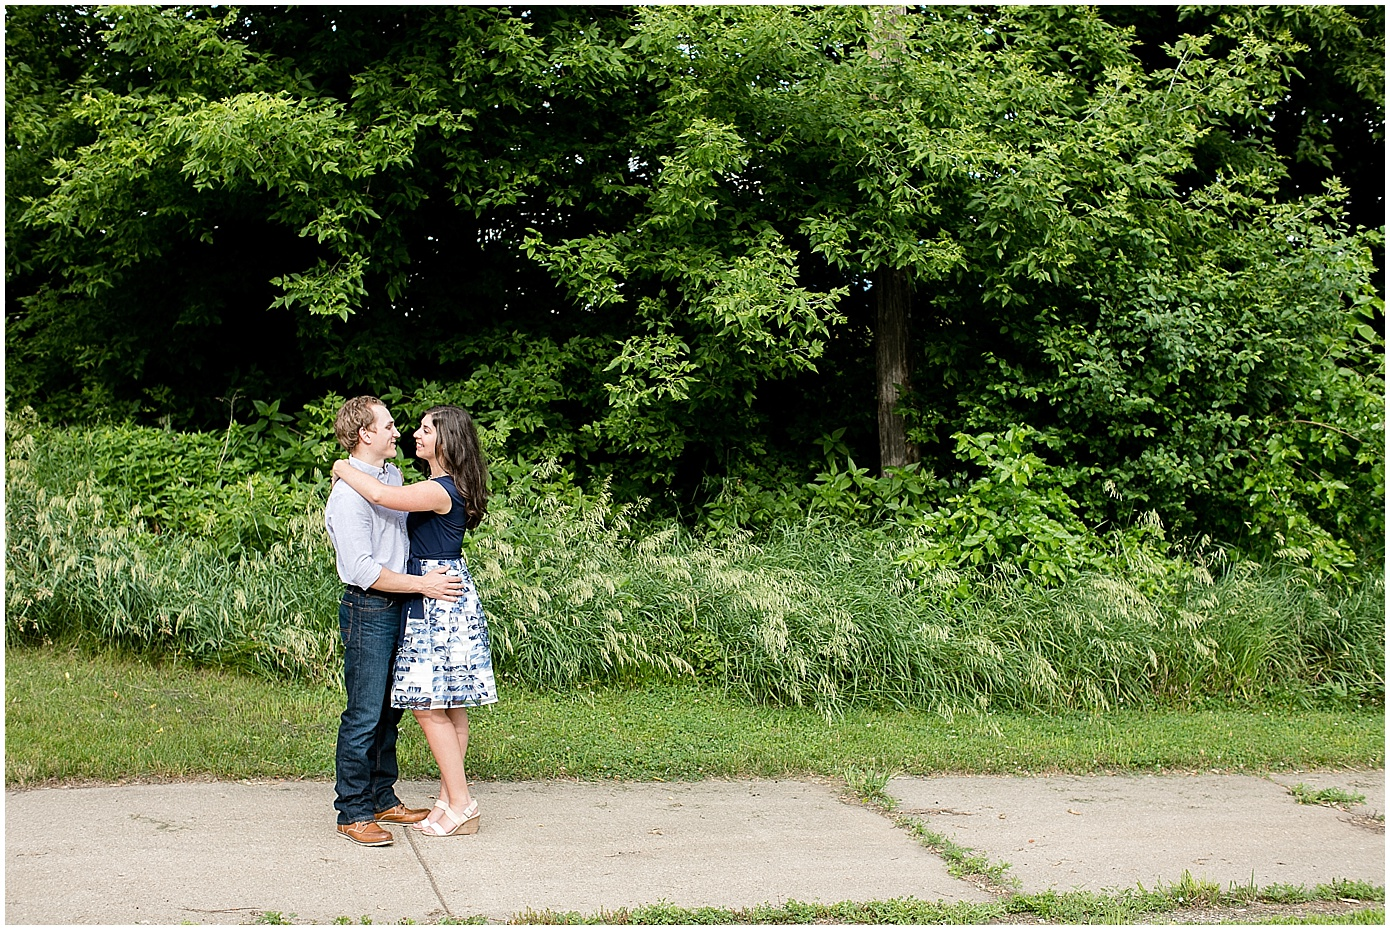 Alice Hq Photography - Sara + Charlie Engaged14.jpg